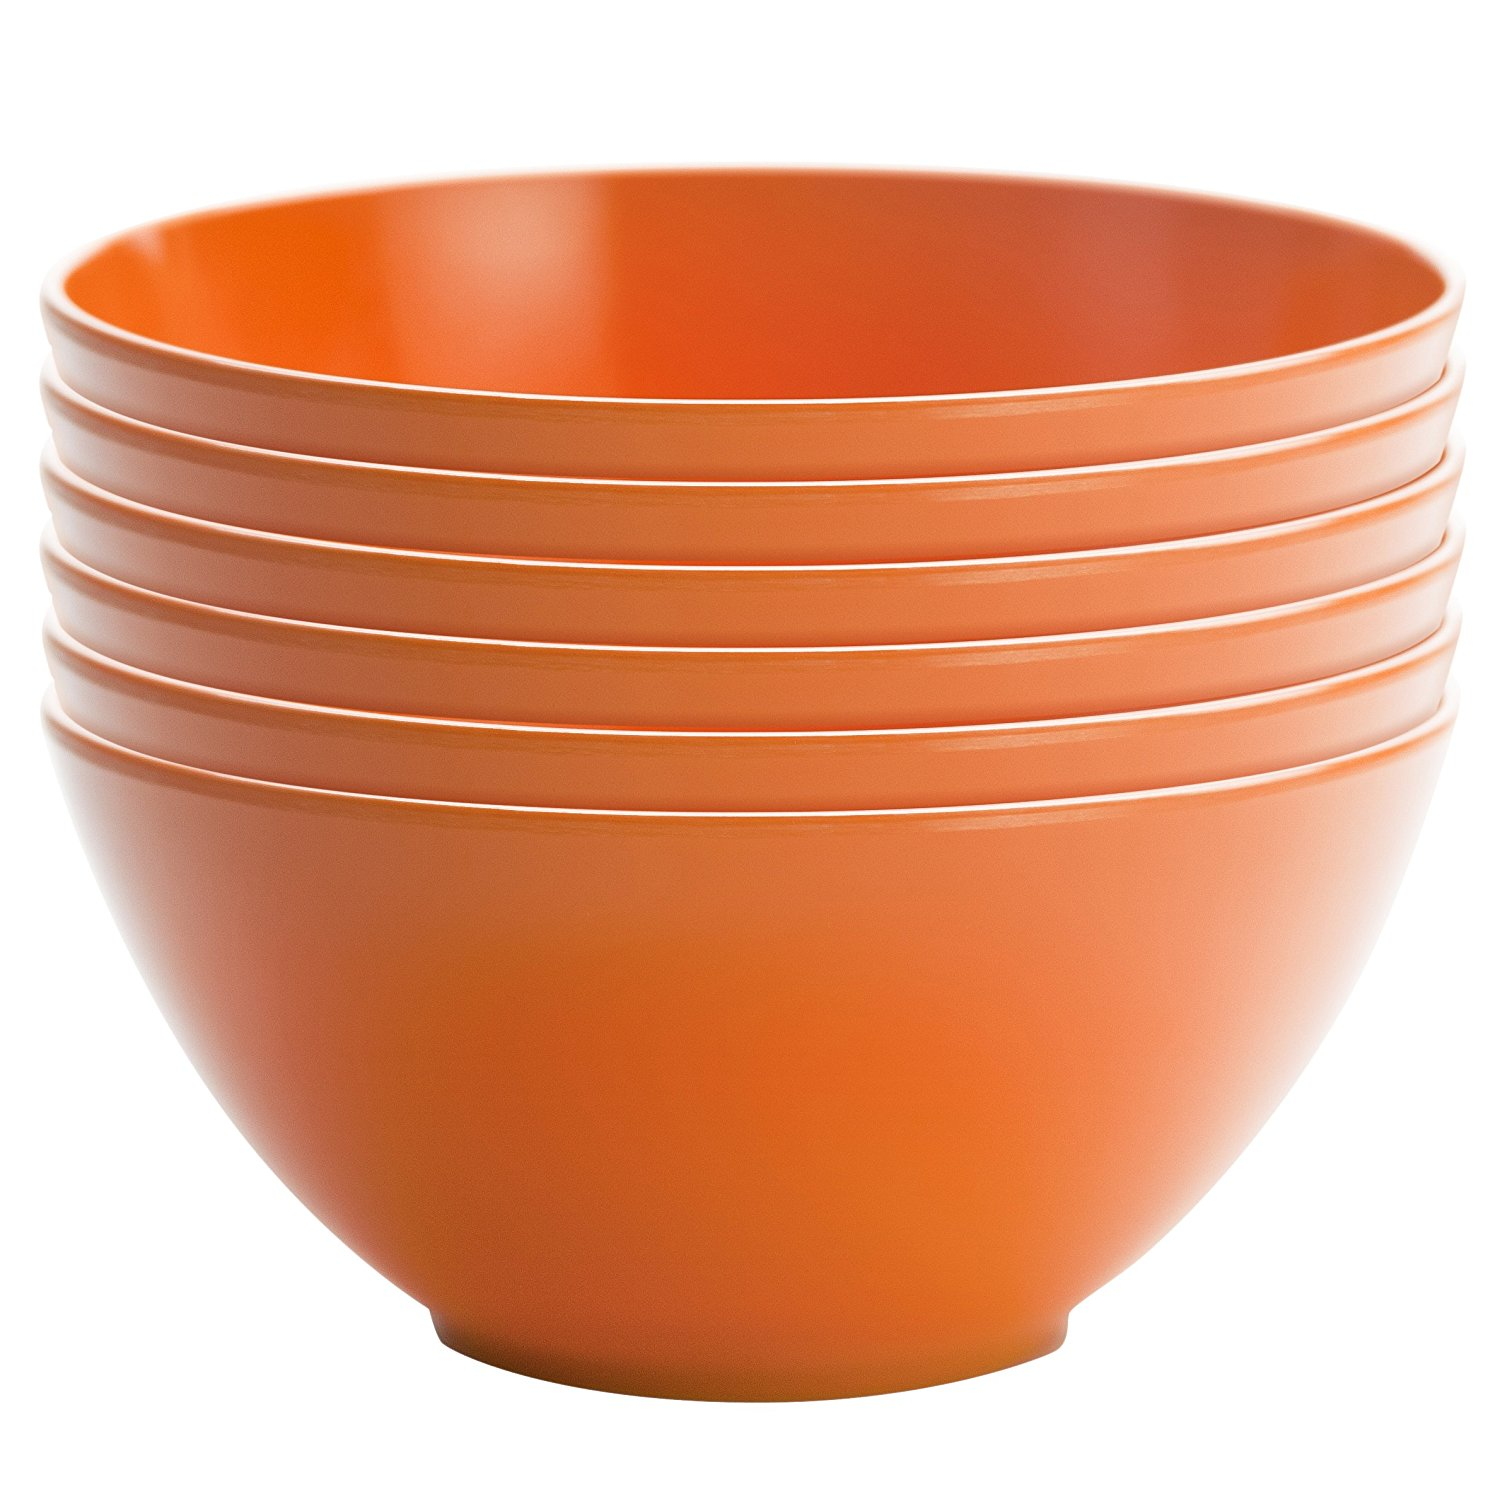 Zak Design Set of 6 Ella Individual Bowls – Available in 8 Colors